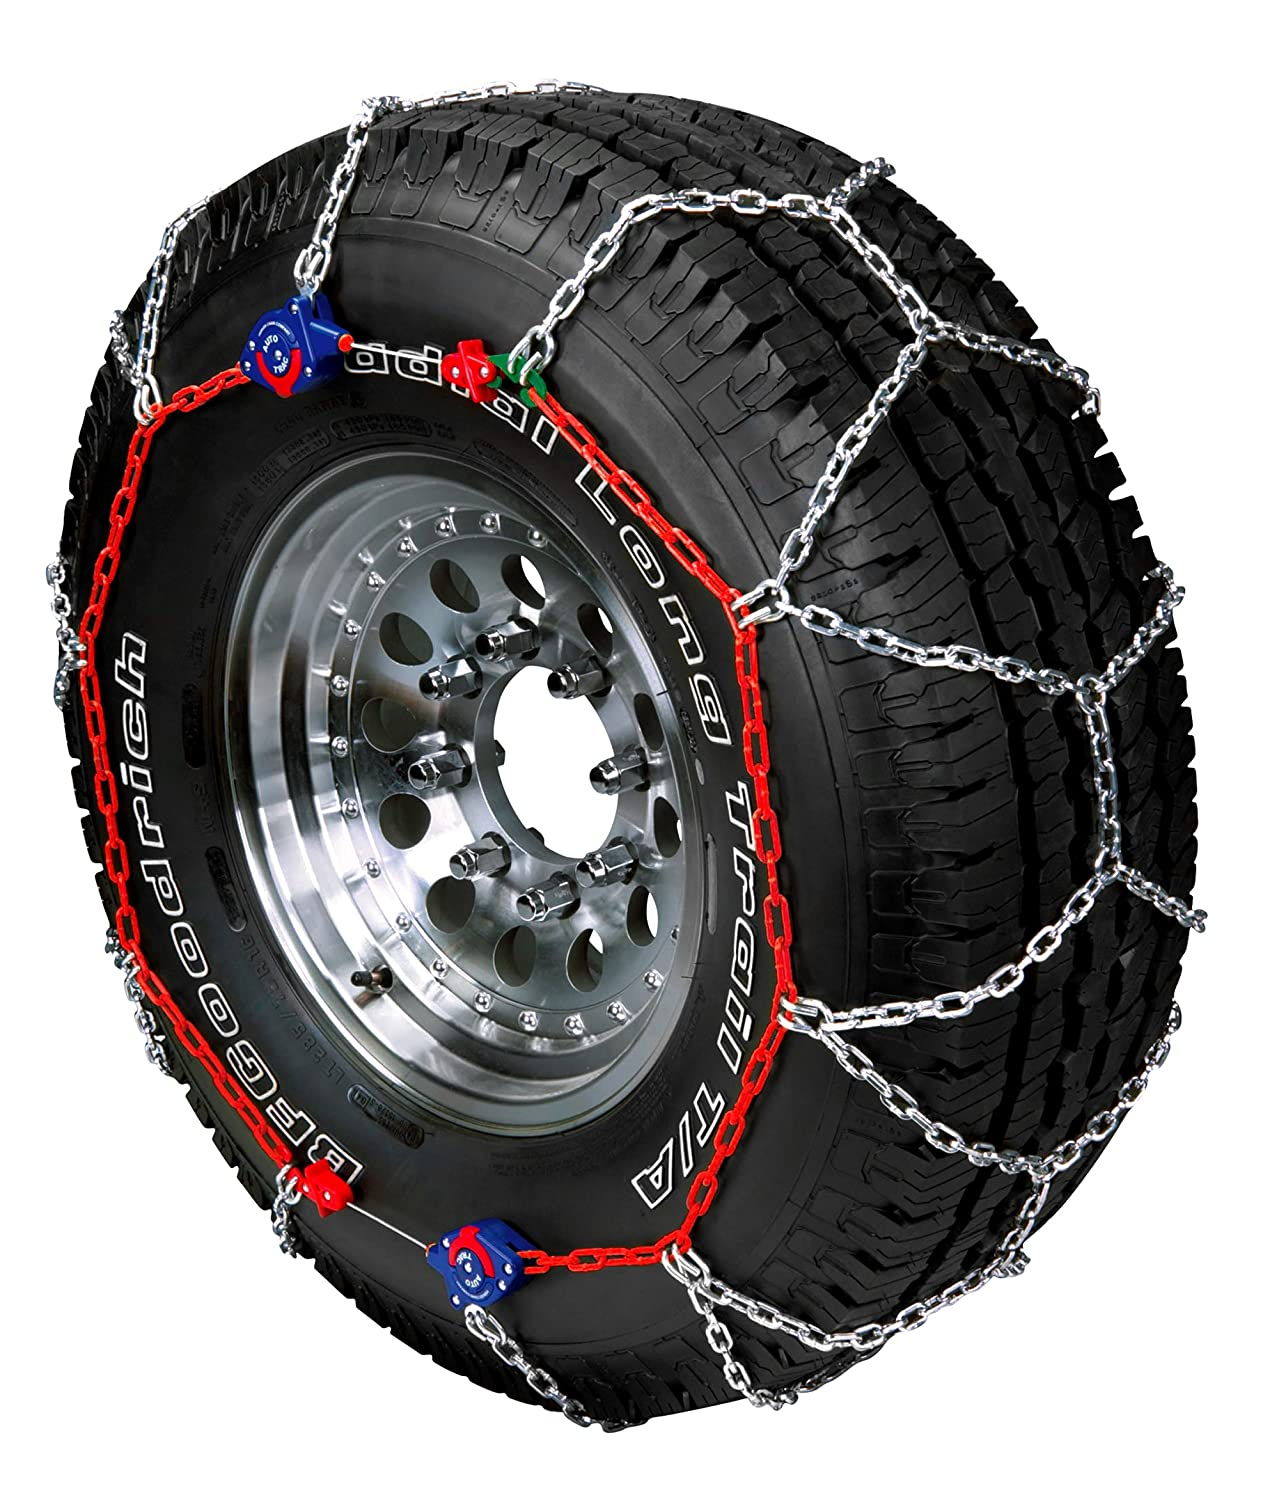 snow chains subaru outback subaru outback forums. Black Bedroom Furniture Sets. Home Design Ideas